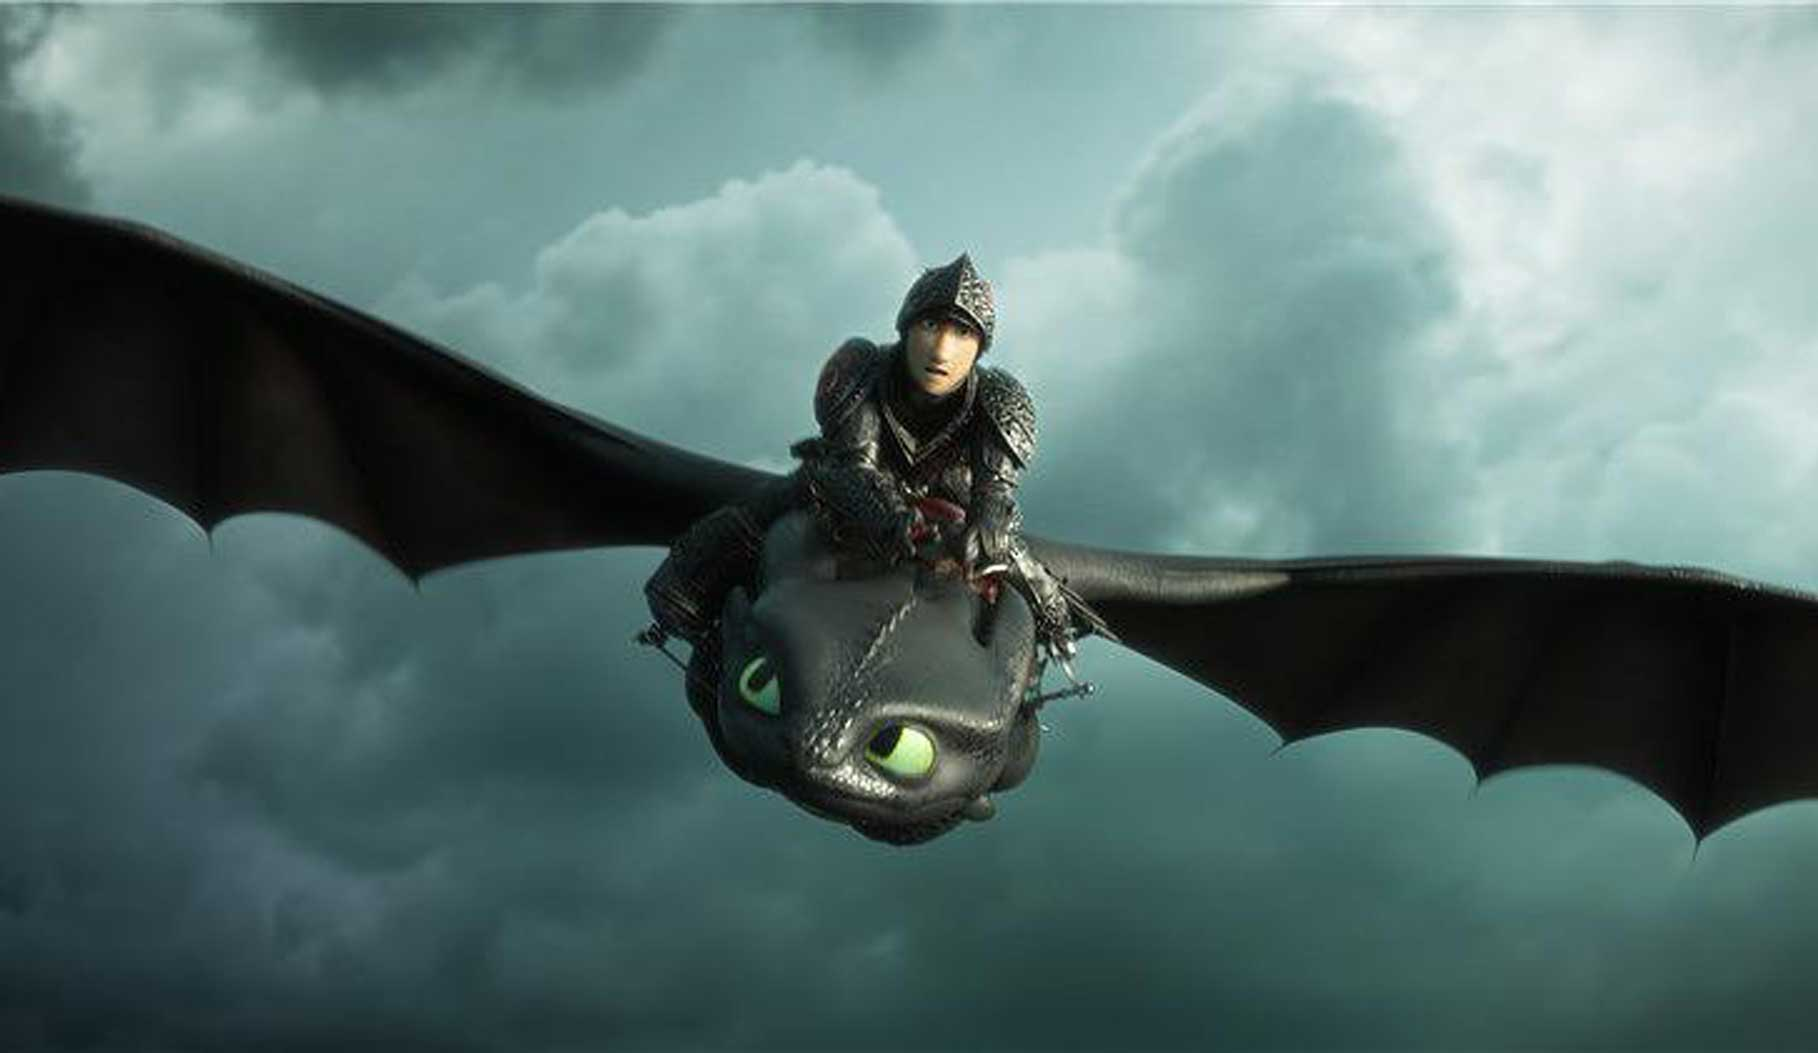 how to train your dragon 3 the hidden world review; dreamworks